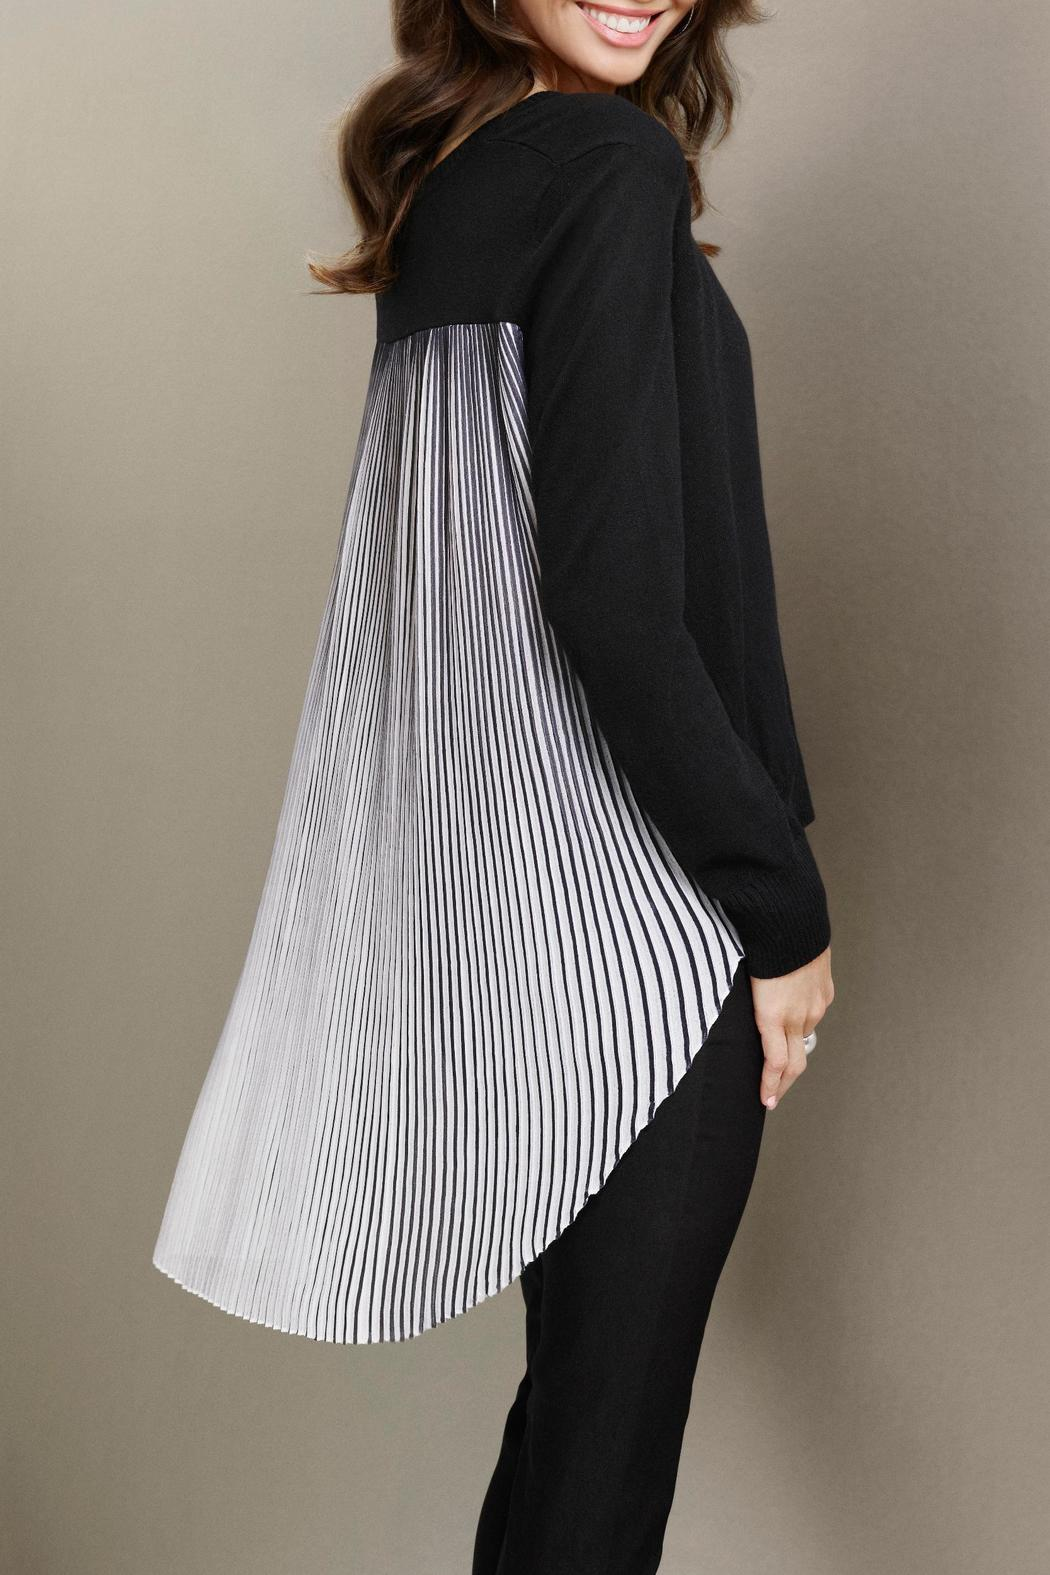 Katherine Barclay Pleated Swing Sweater from Canada by Didi s ... 959ffdaf6